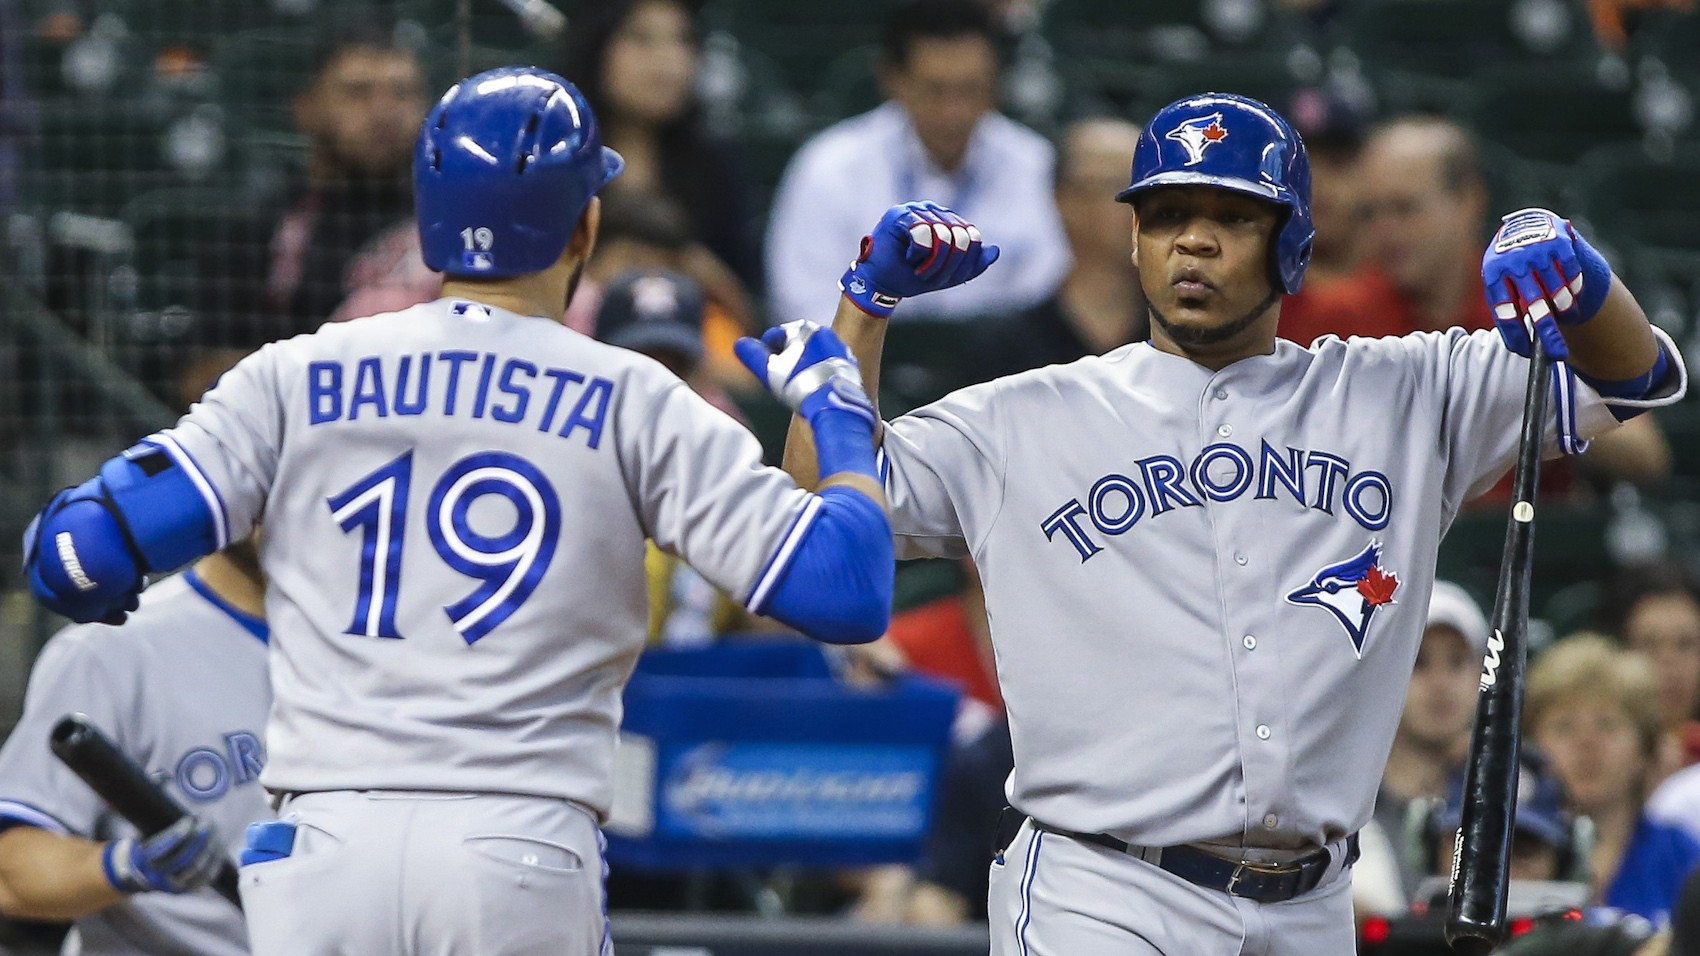 Allowing Bautista, Encarnacion to Acquire Veto Rights Shows Blue Jays Have No Desire to Trade Them